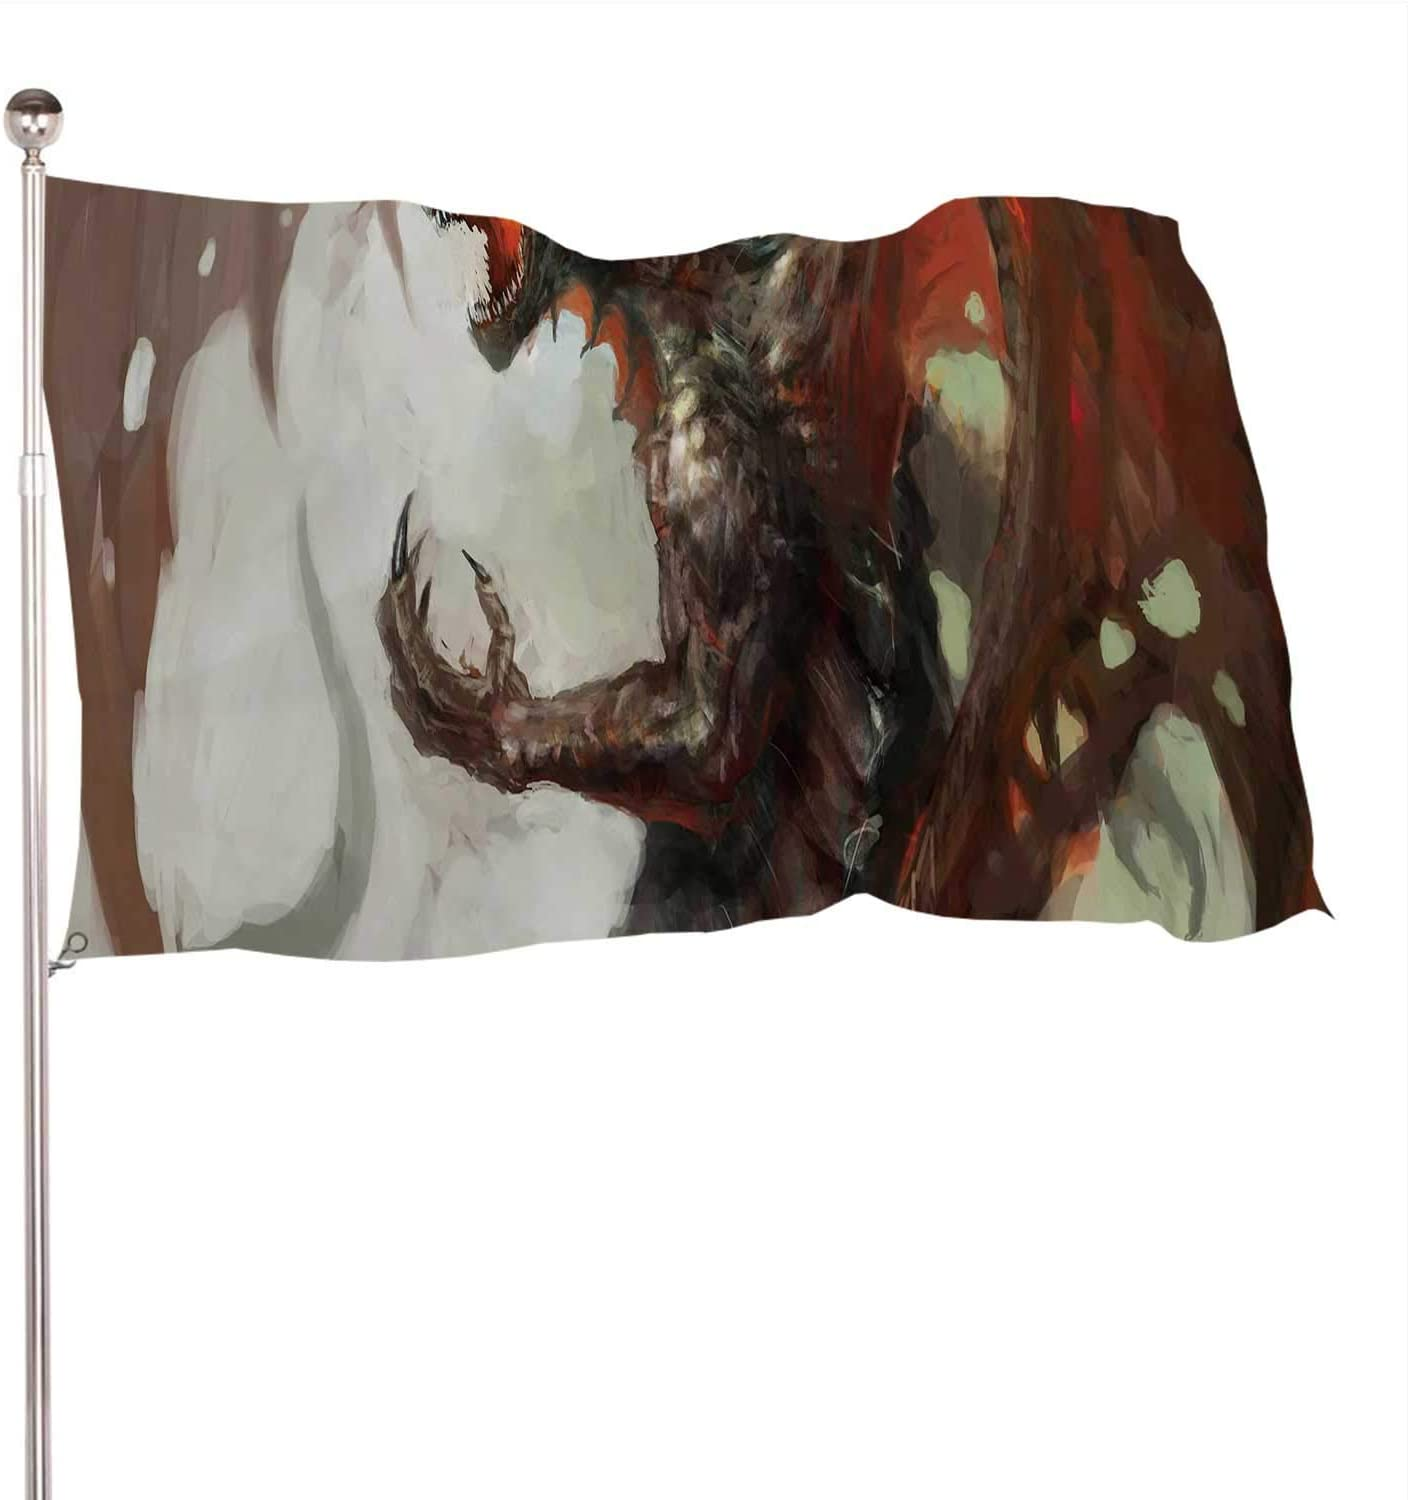 Dxichy of Mythology Creature,Decoration Indoor and Outdoor BannerThe Banquet Large Dragon 3x5 Ft